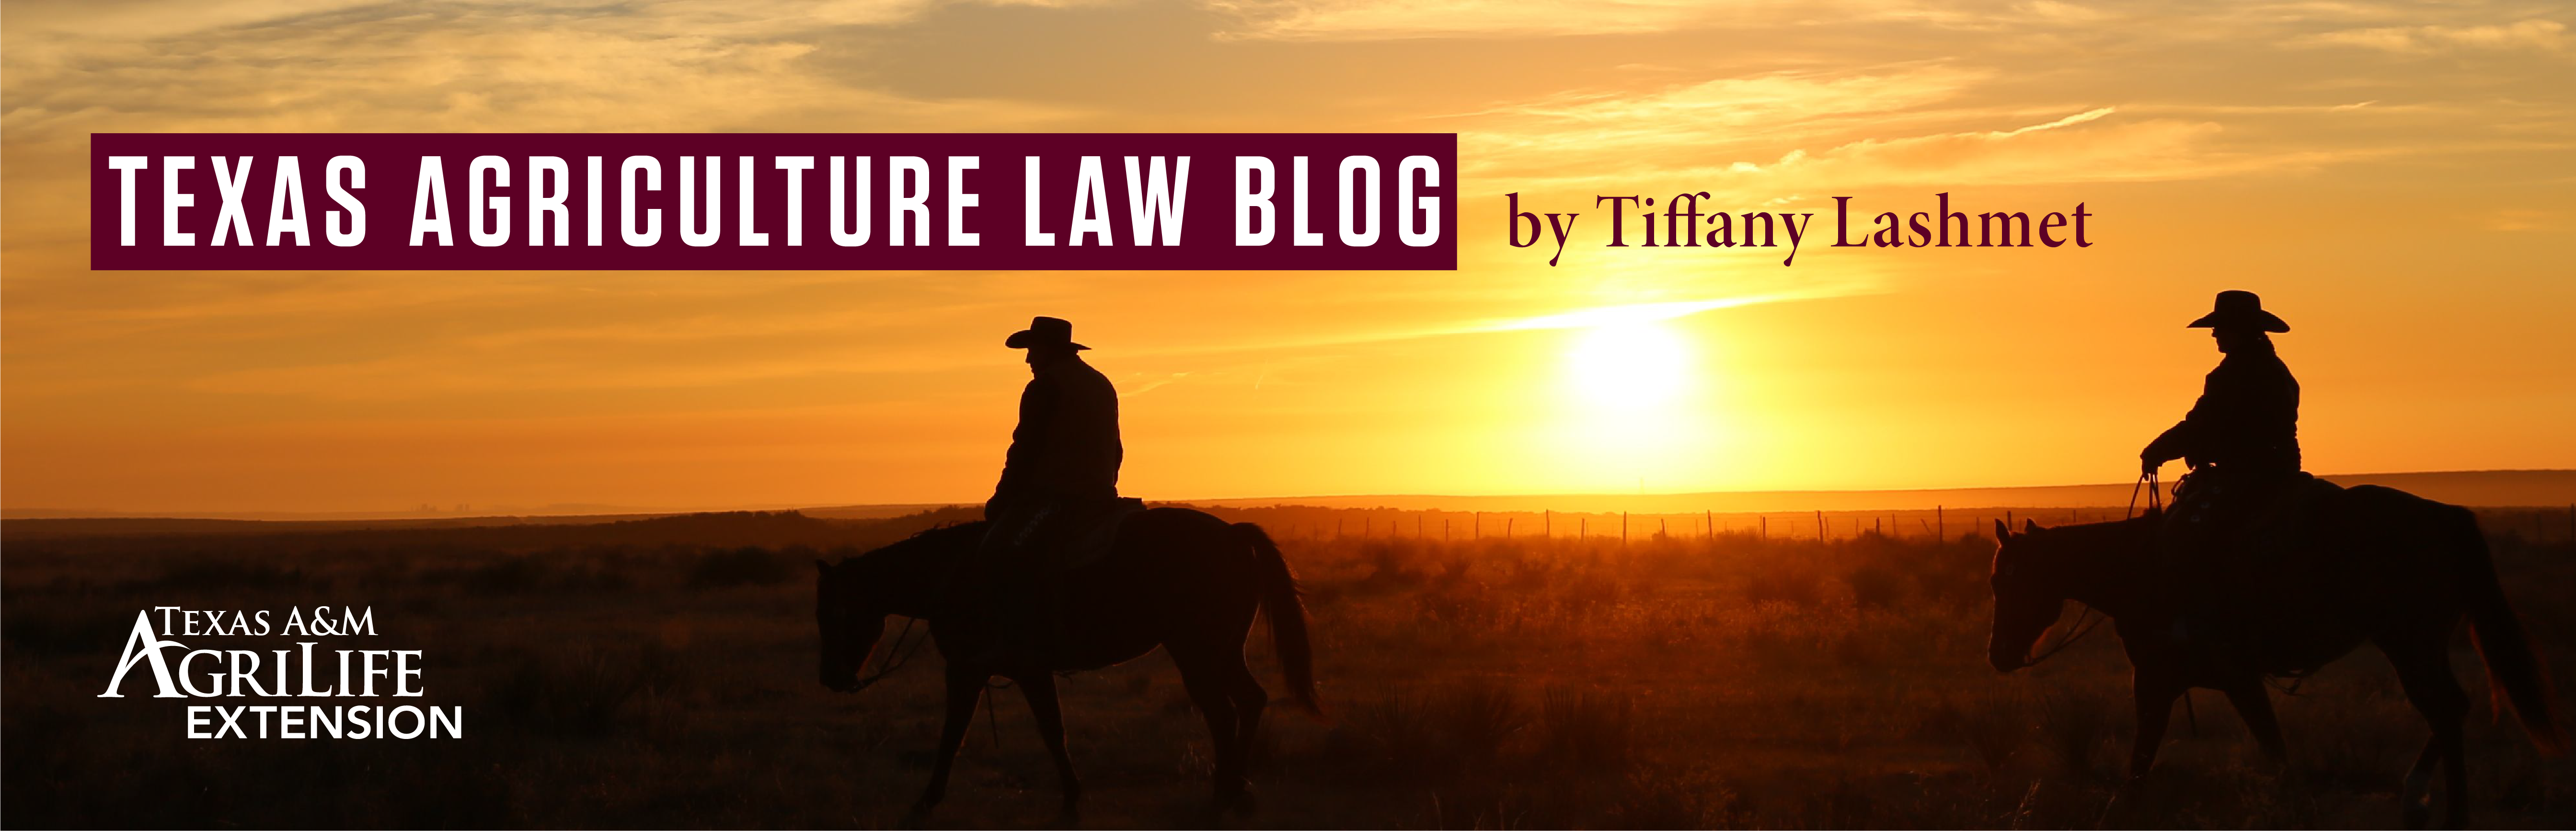 Texas Agriculture Law